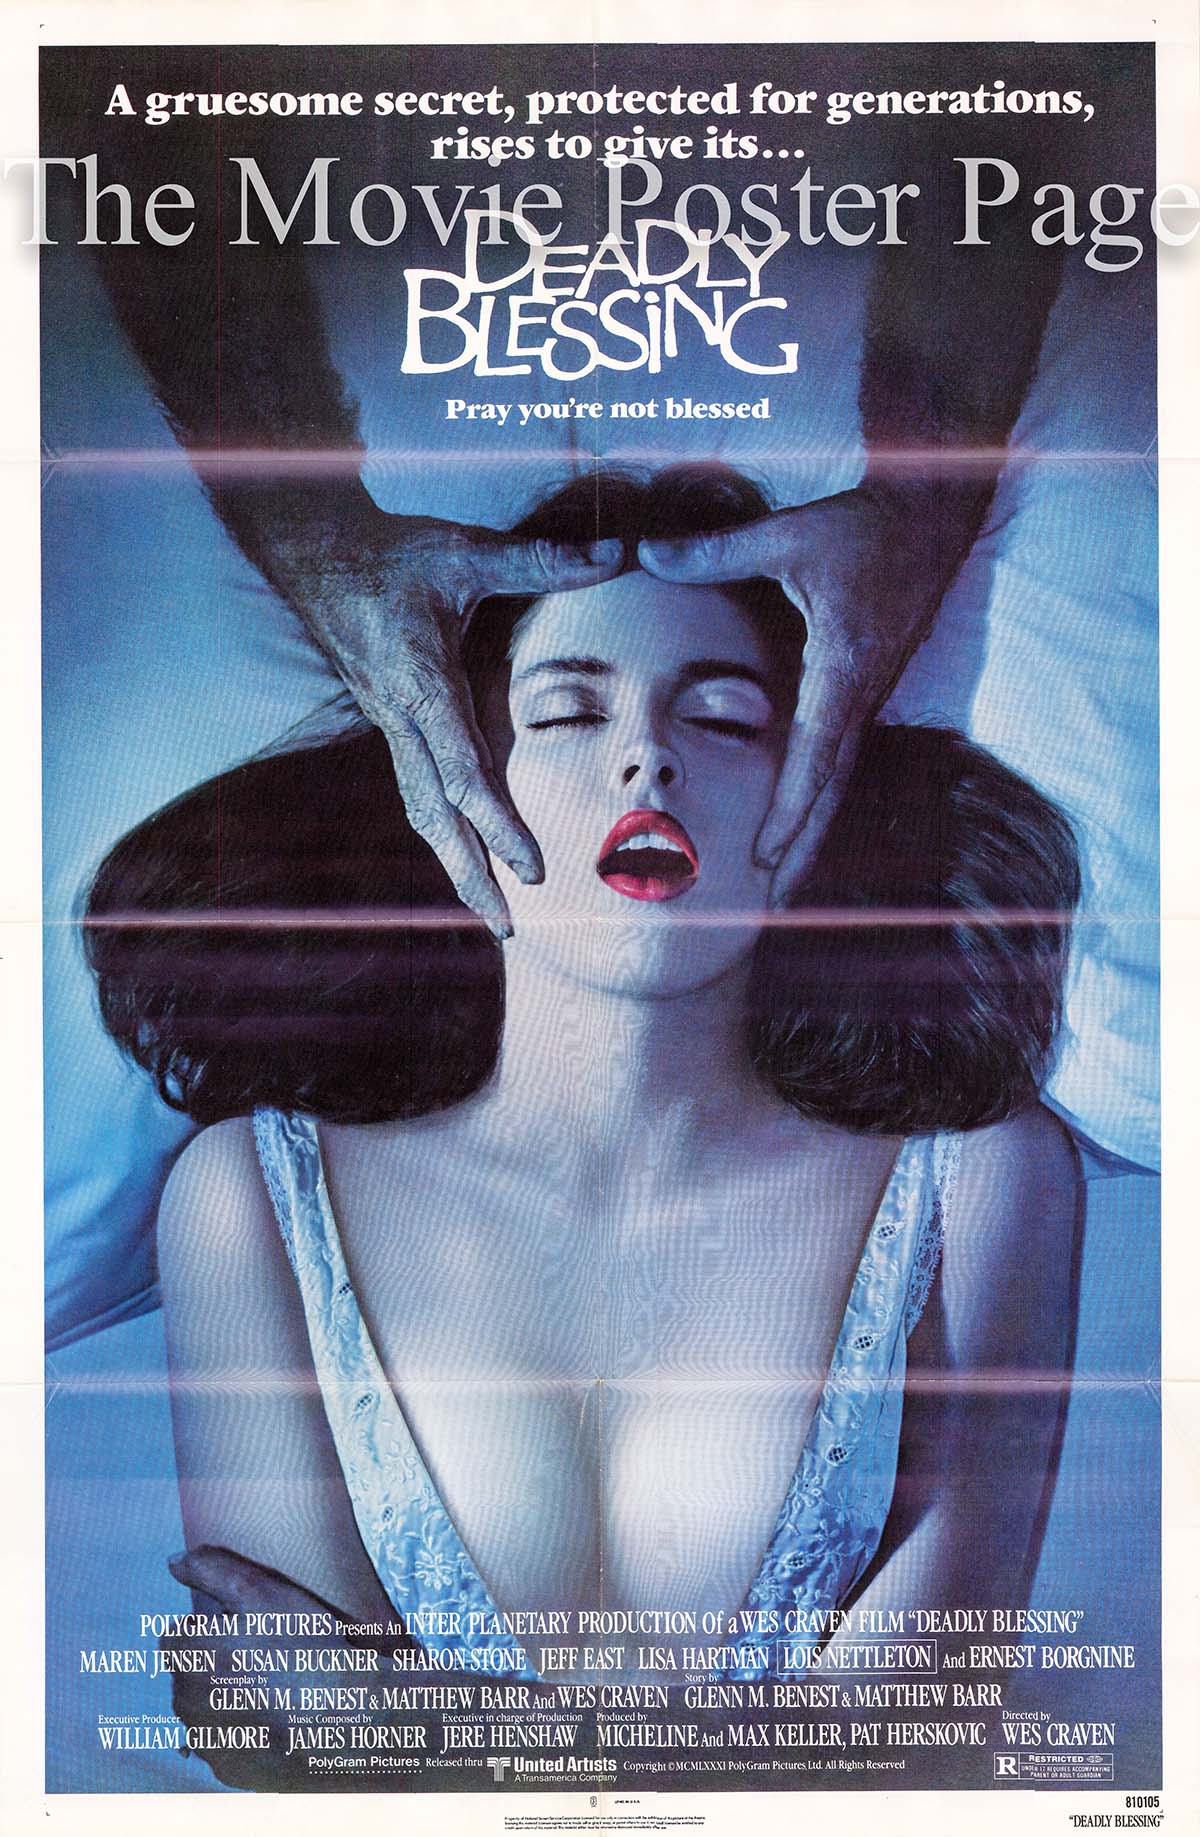 Pictured is a US one-sheet poster fothe 1981 Wes Craven film Deadly Blessing starring Sharon Stone as Lana Marcus.